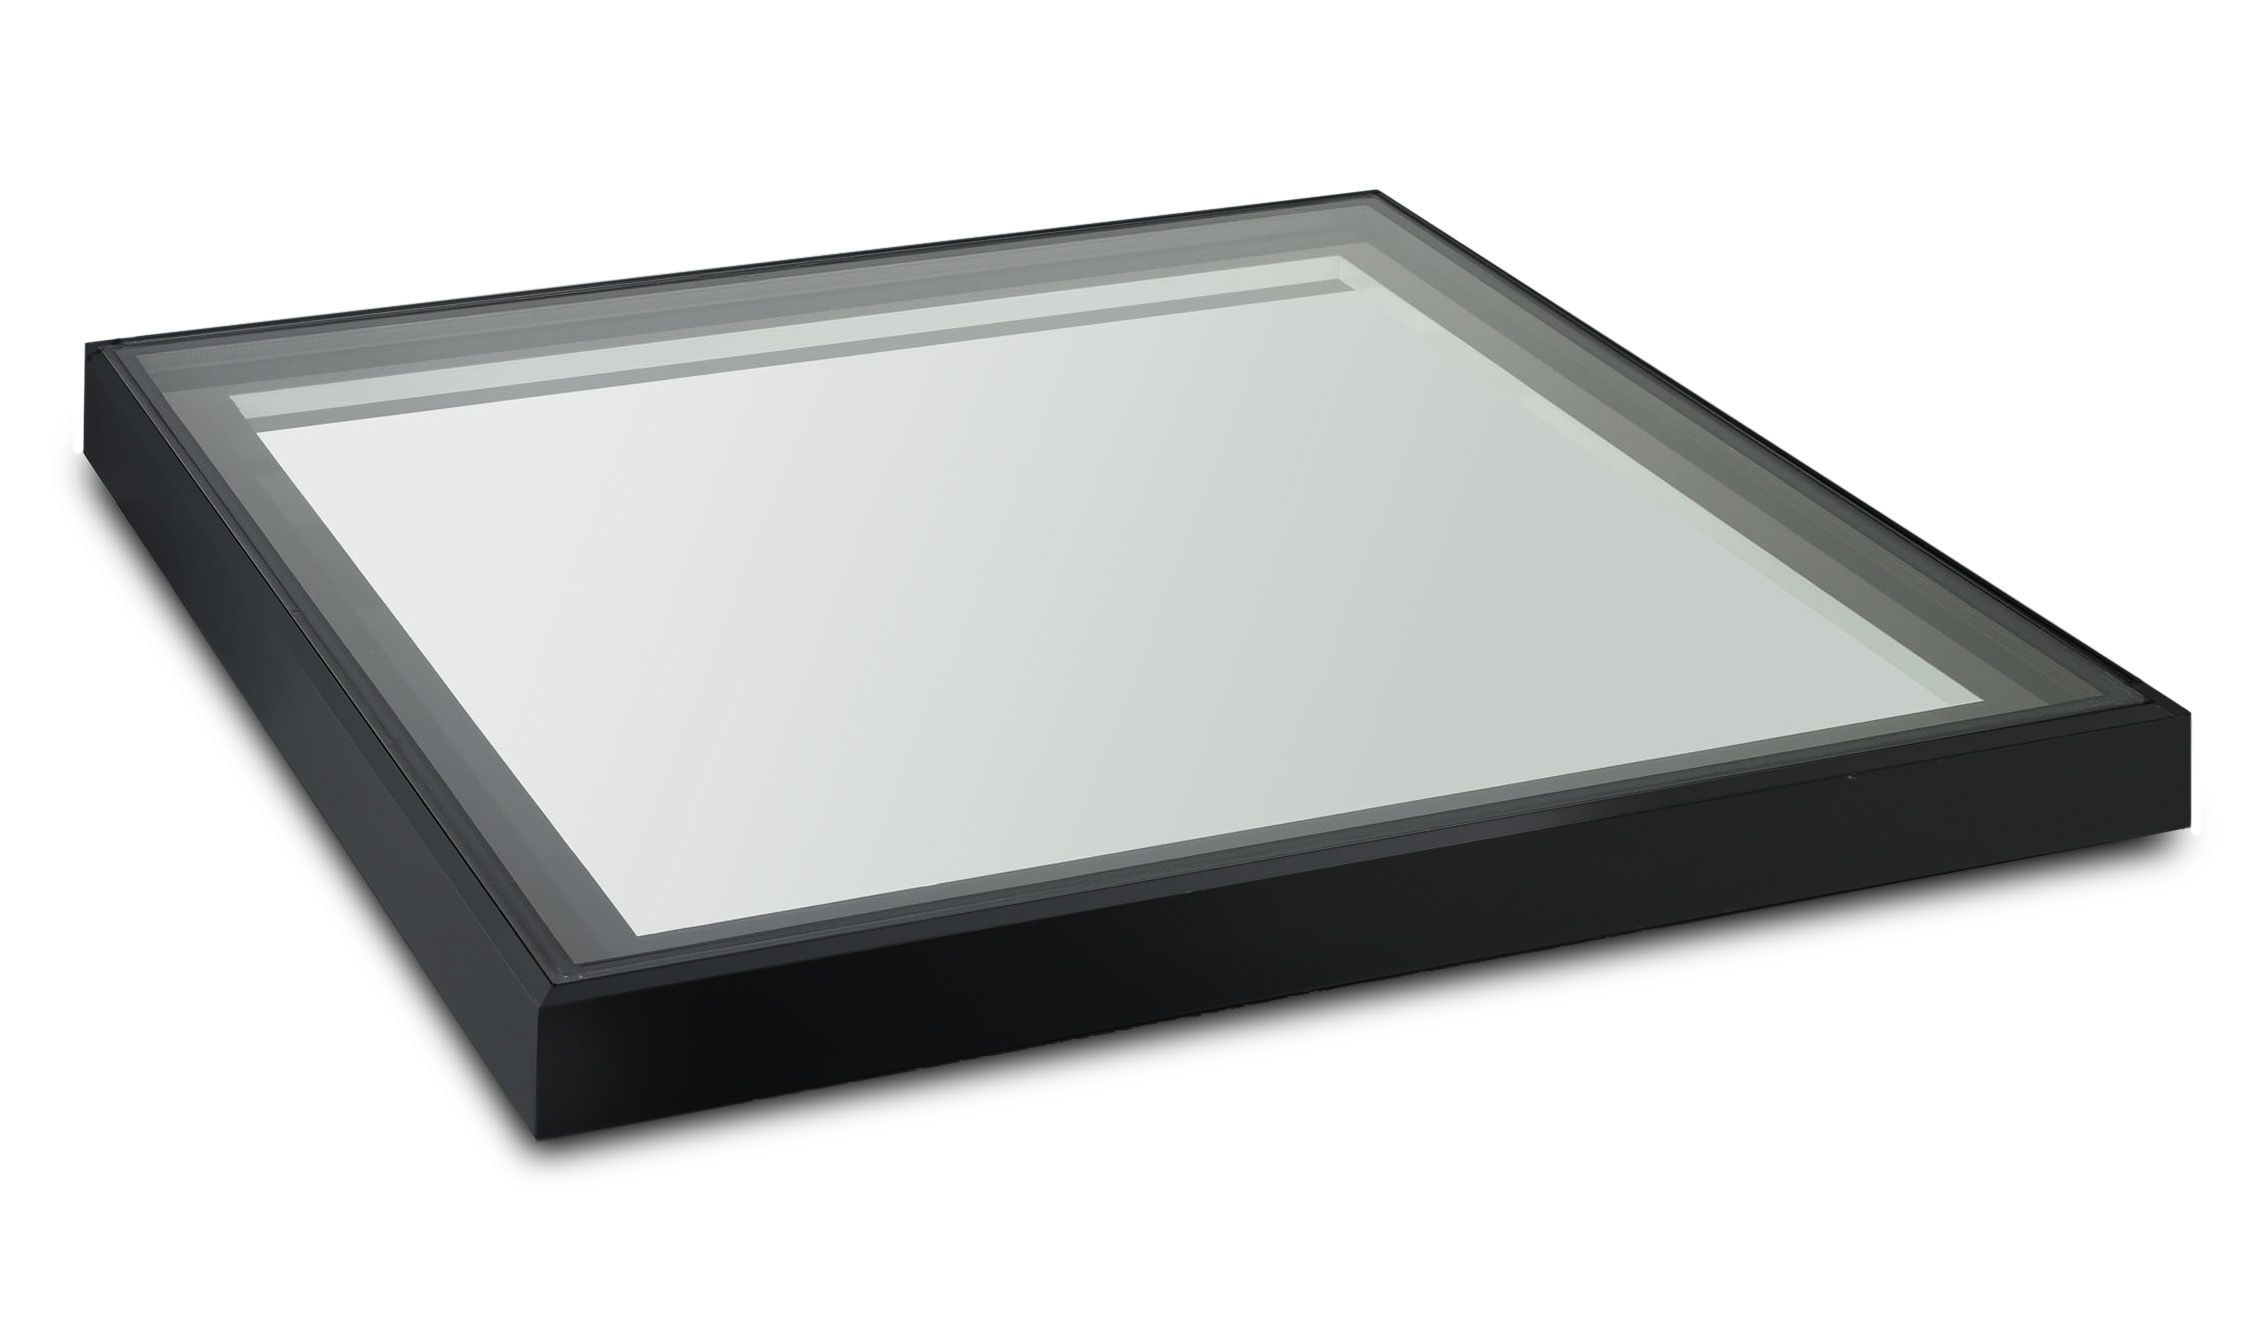 Rooflights | Fixed Glass Rooflights | Skylights - Vision Roof Lights